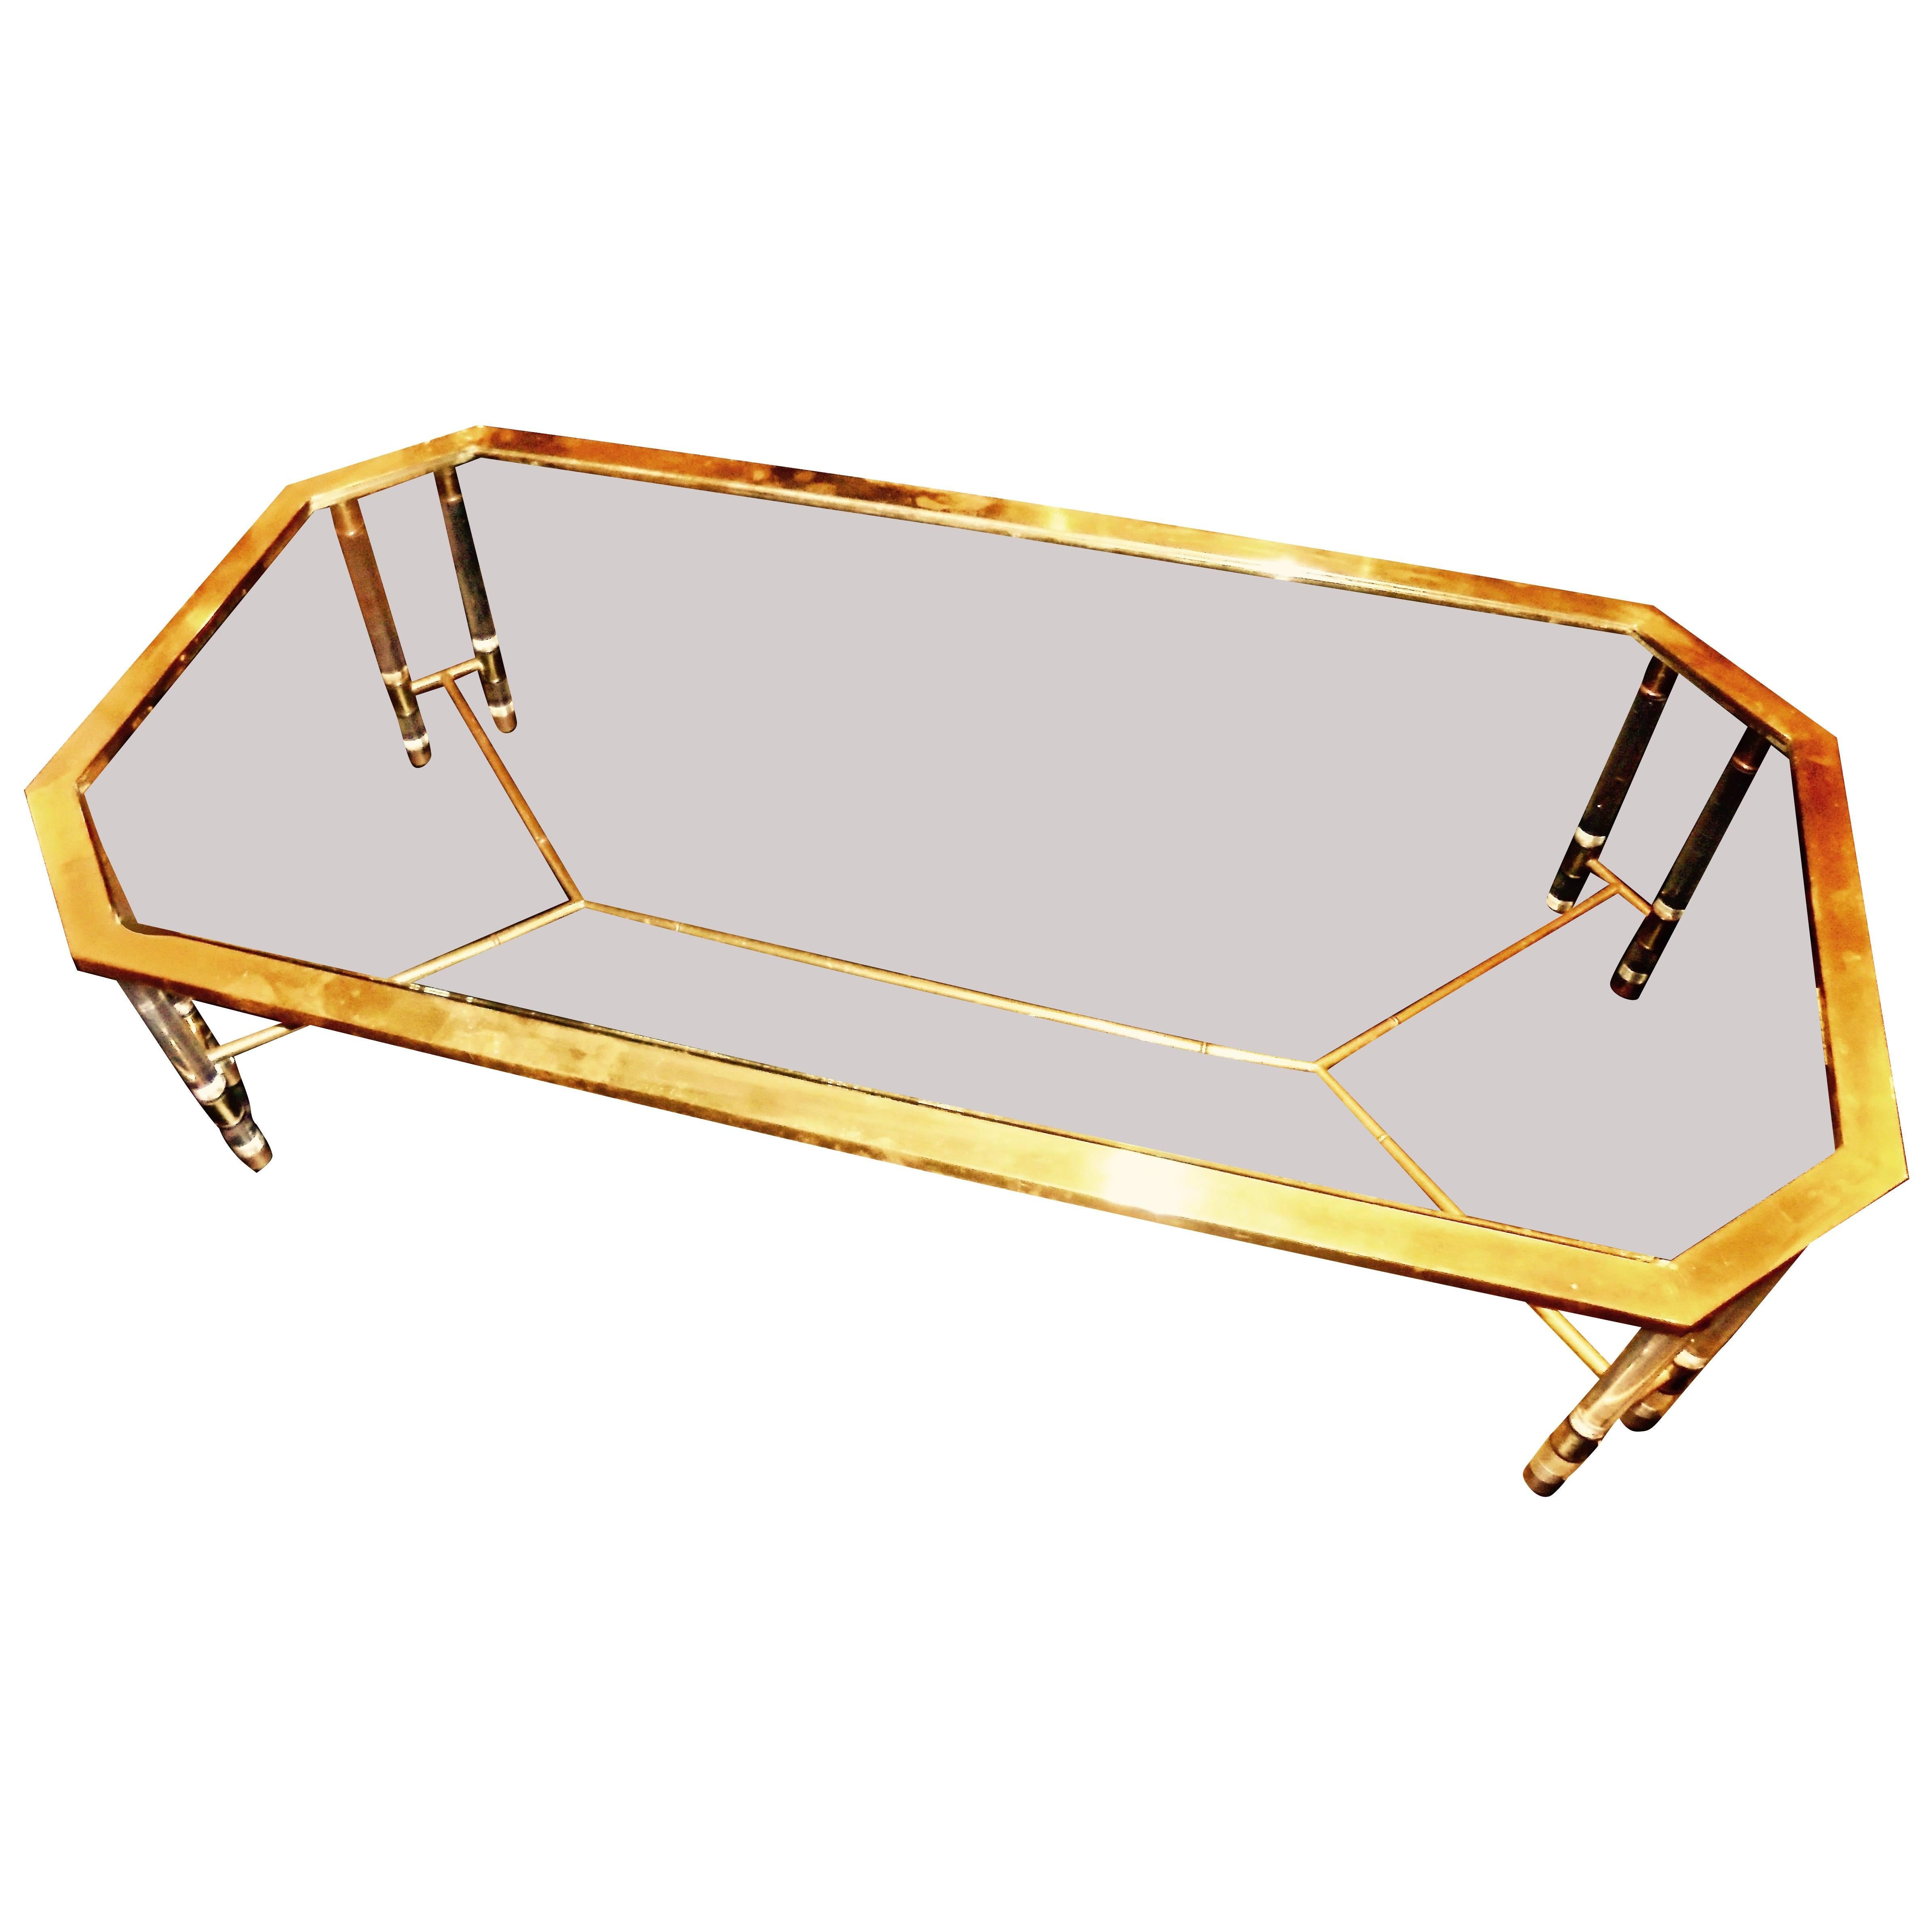 Large Brass and Lucite Coffee Table by Romeo Rega For Sale at 1stdibs